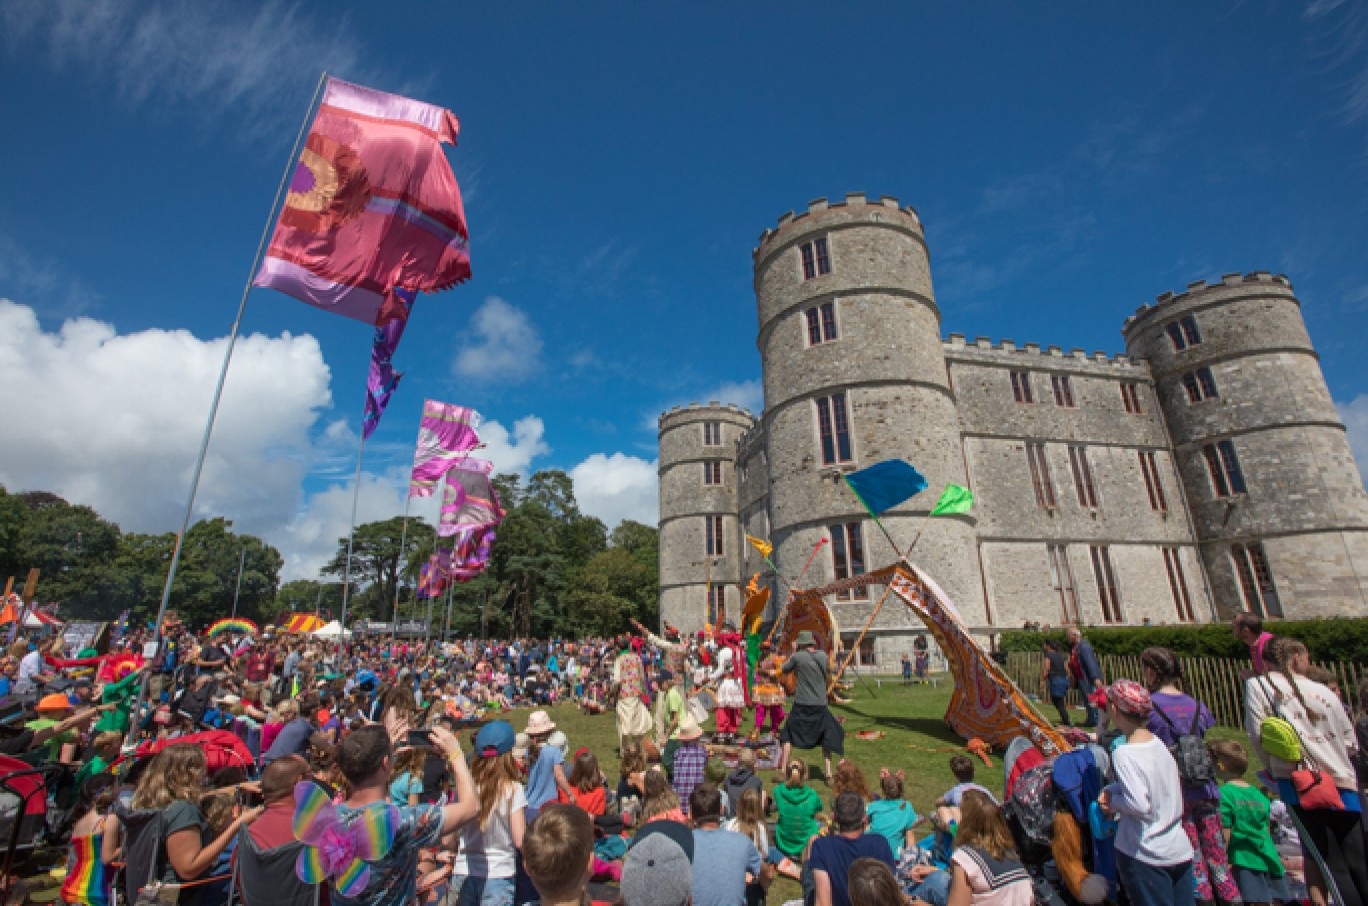 6_70-camp-bestival-2017-castle-field-vf-vic_66061501585037